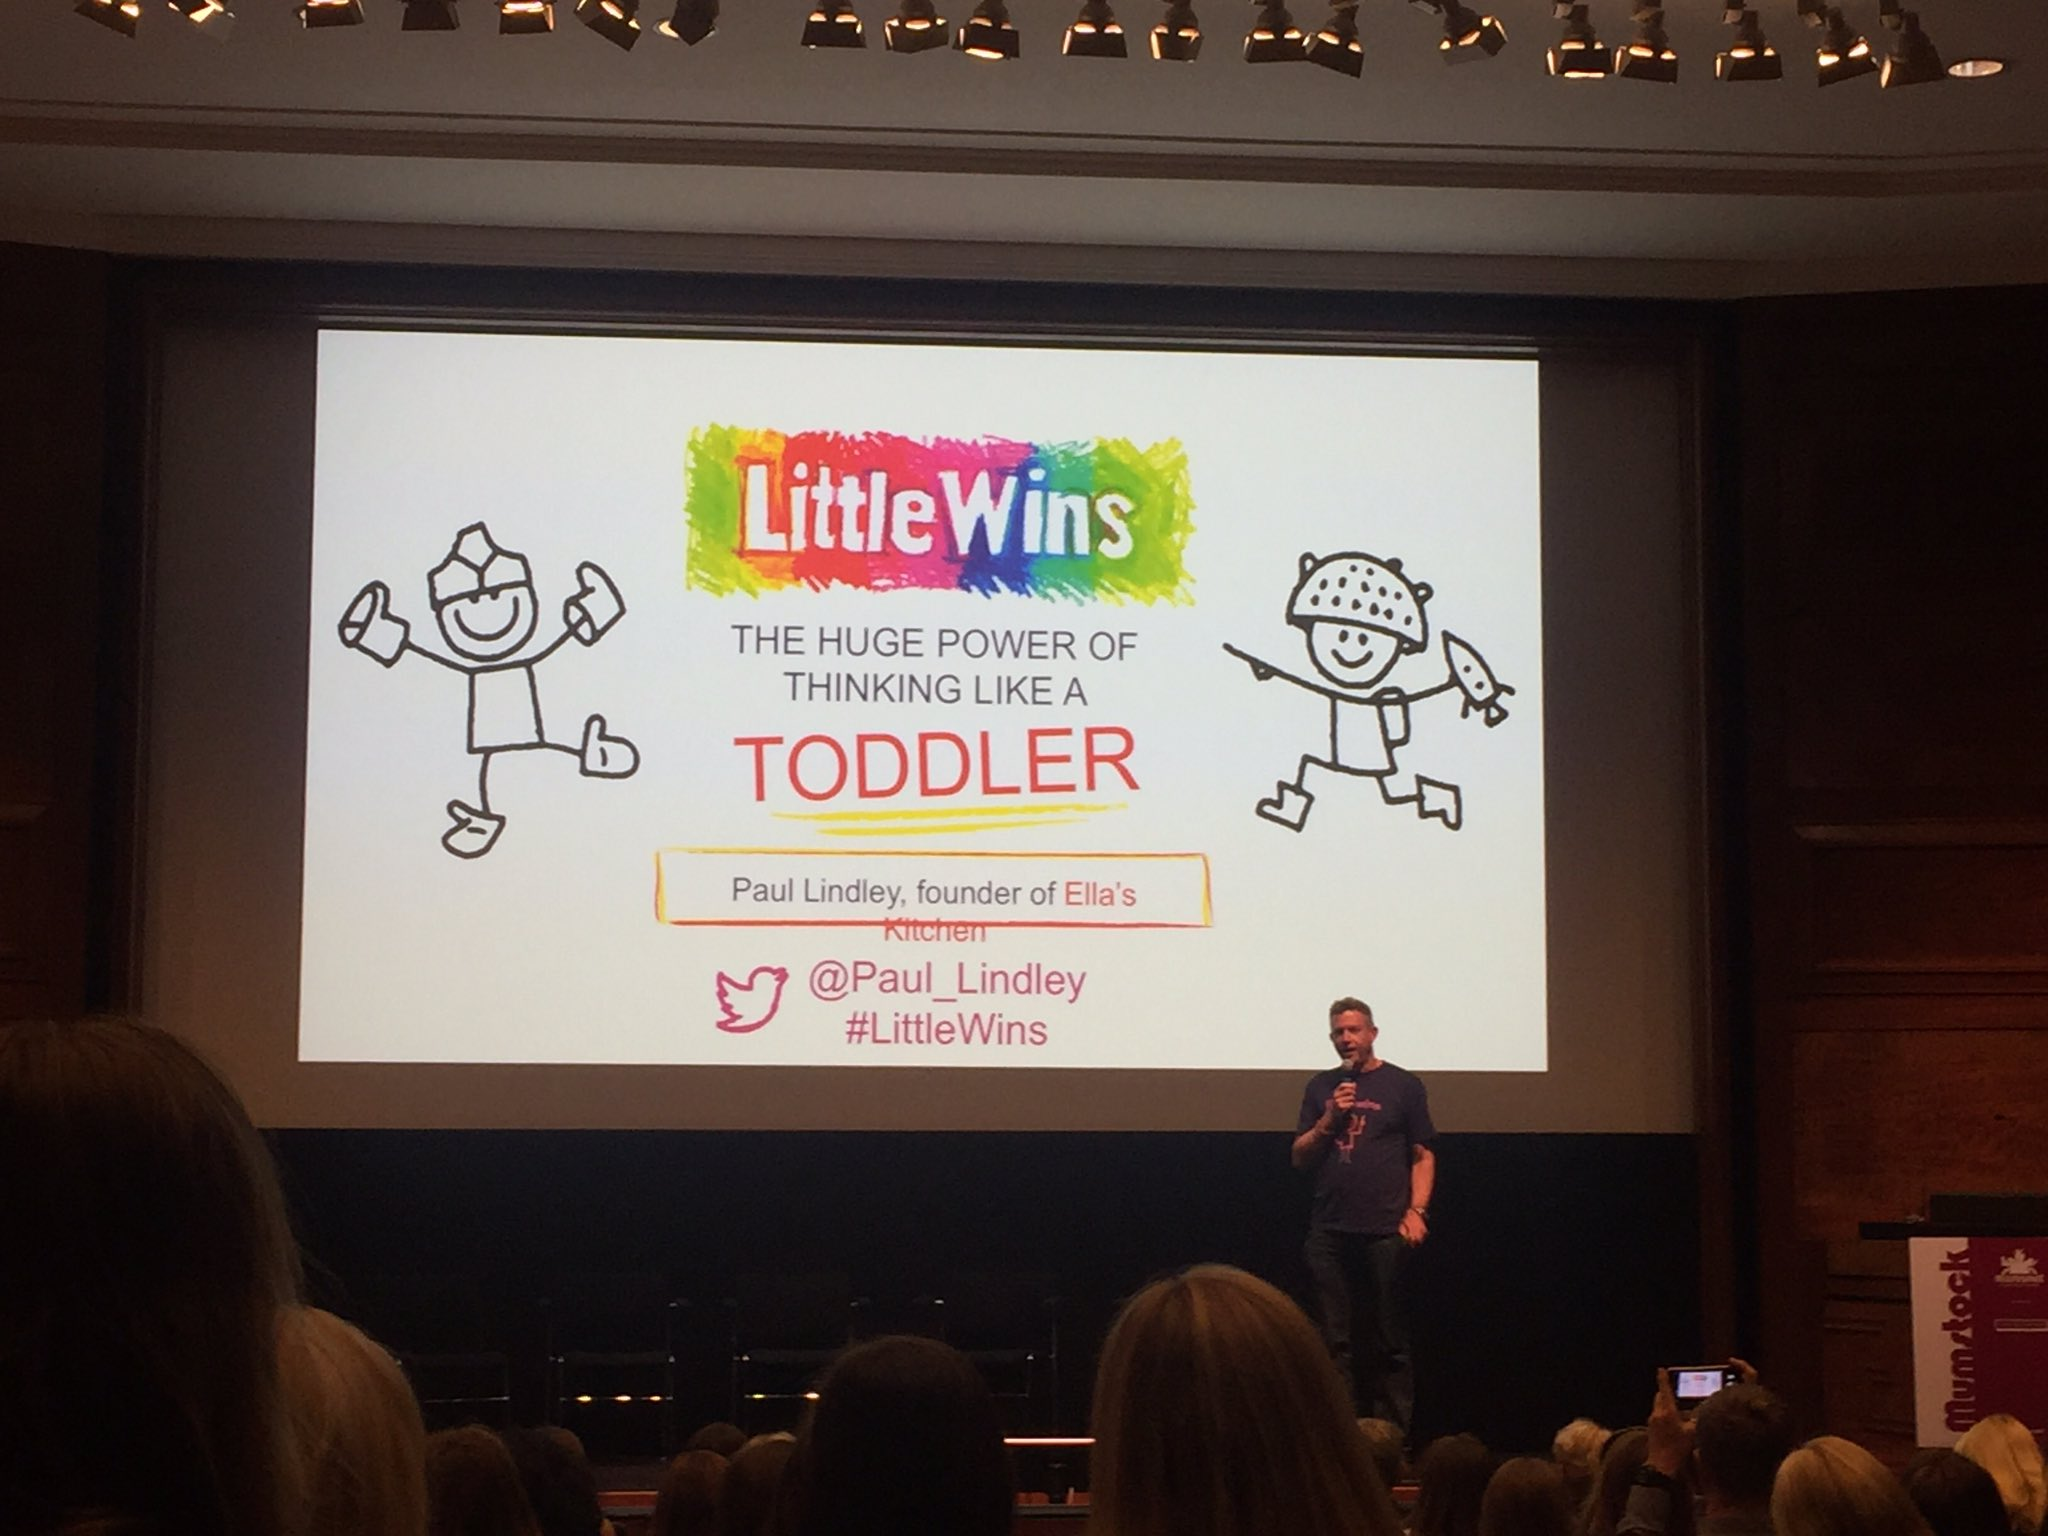 Our final speaker today at #mumstock, the wonderful @Paul_Lindley from @EllasKitchenUK https://t.co/b0WUfuIFUF